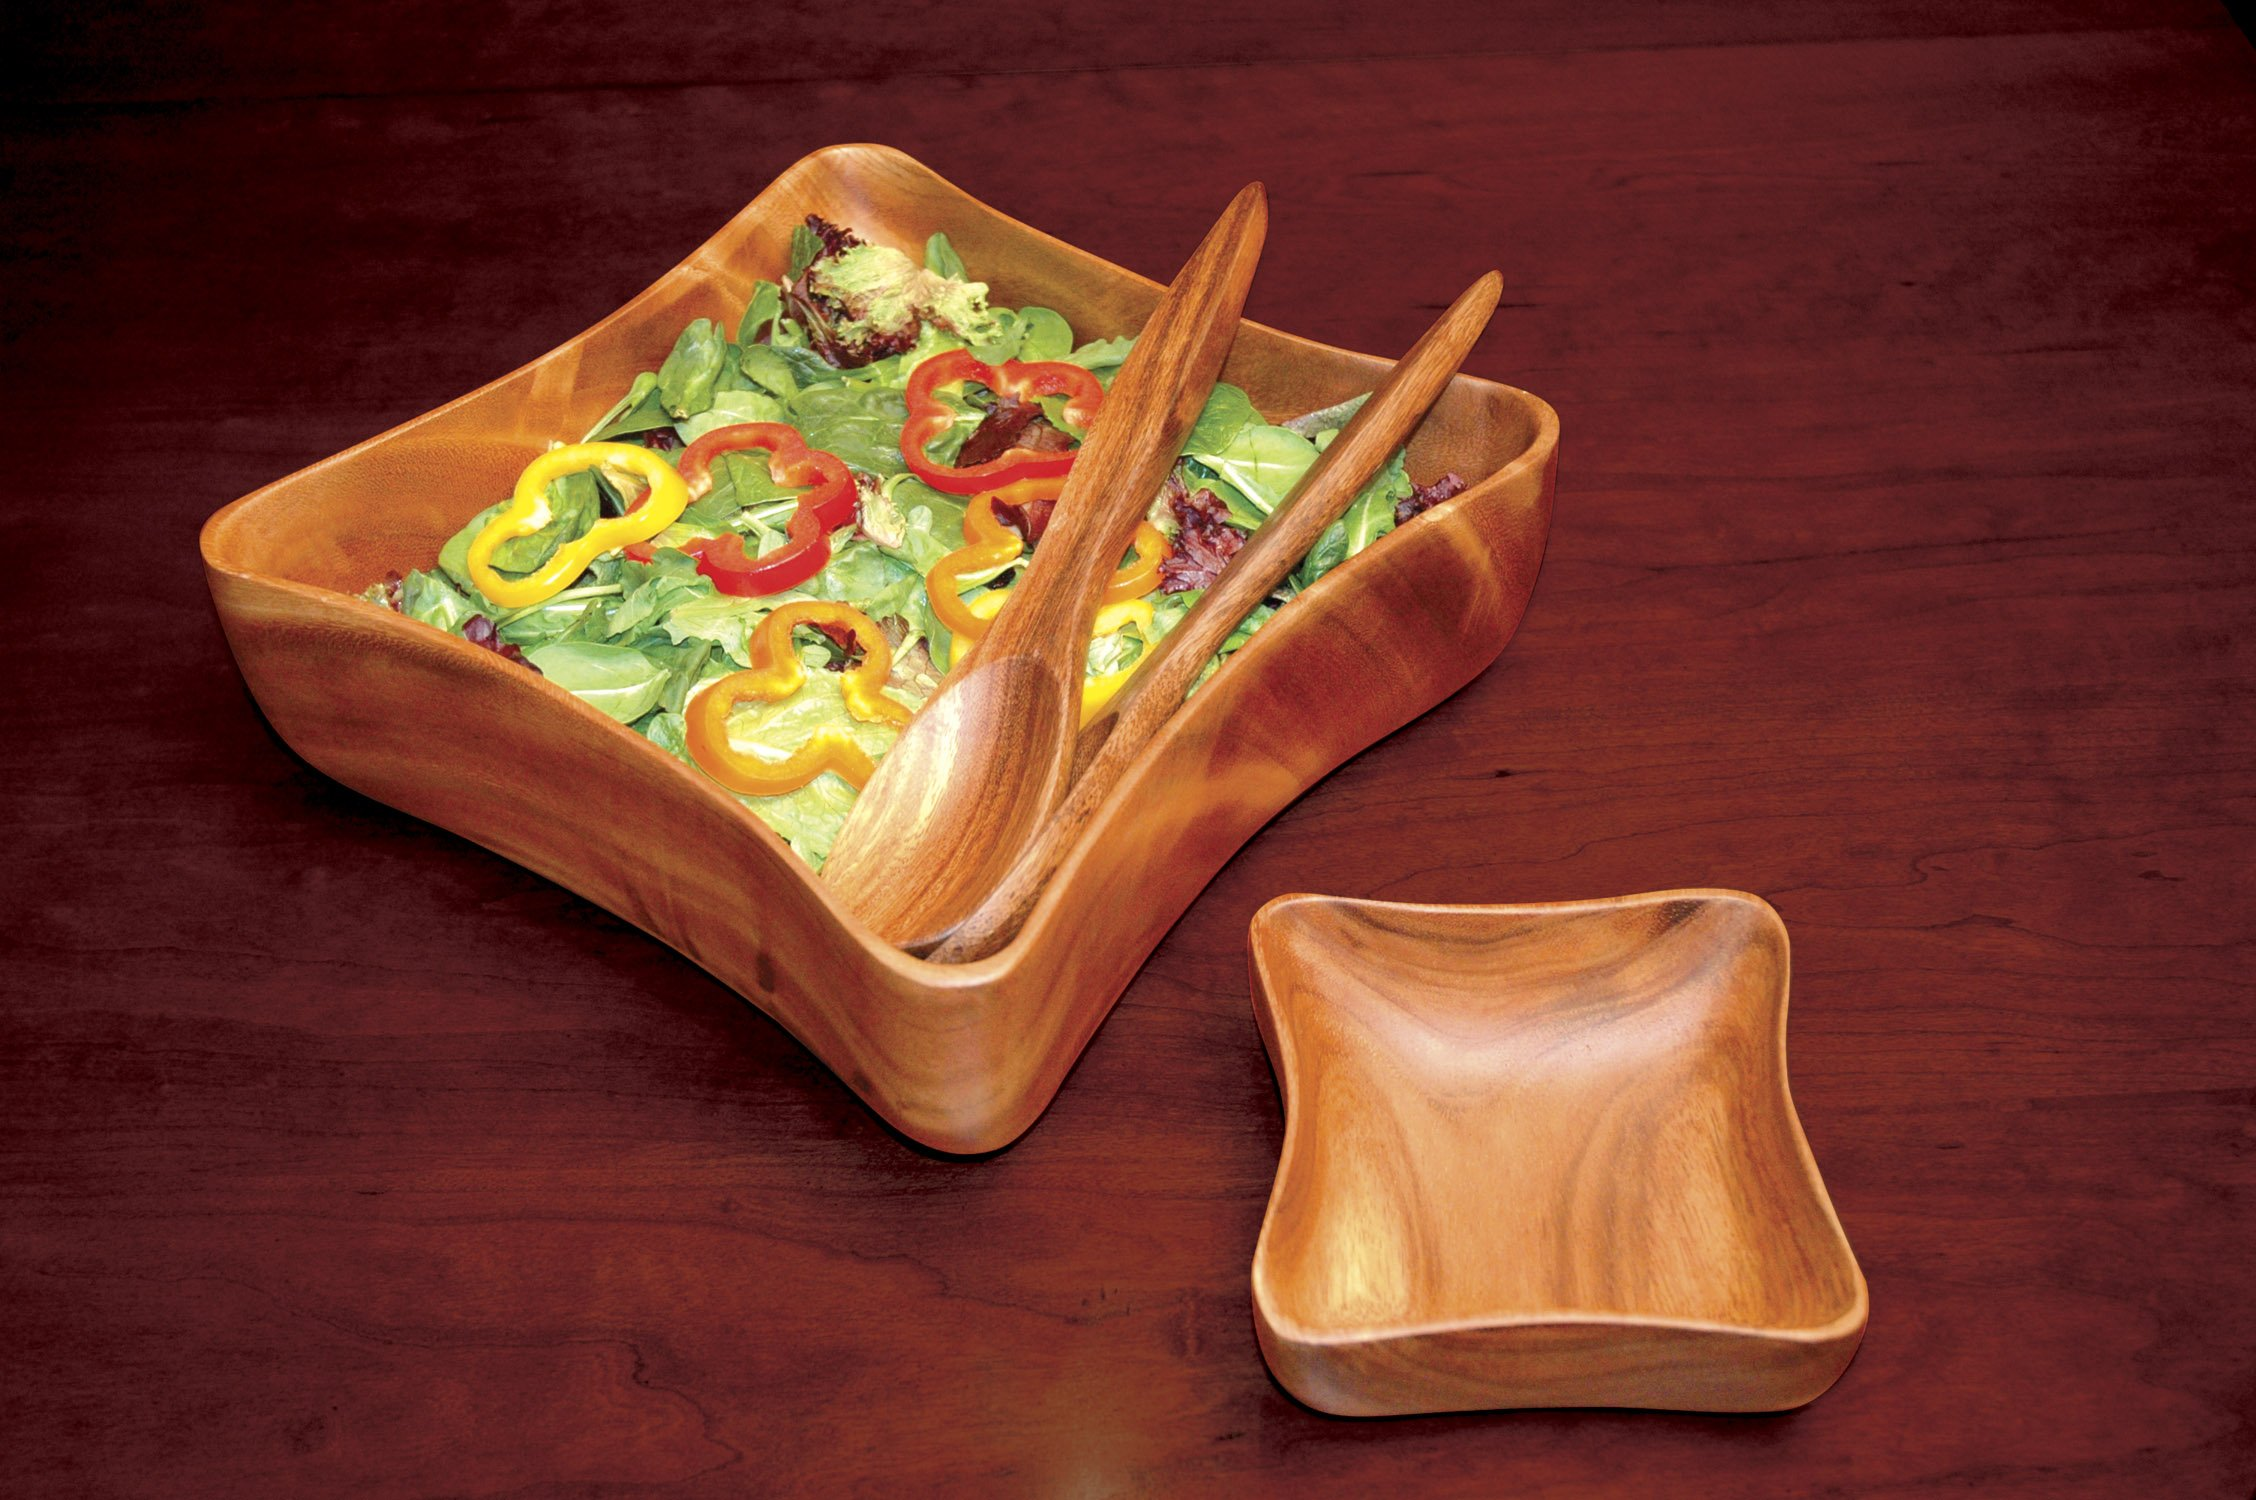 Pacific Merchants Acaciaware 10- by 6- by 2-Inch Acacia Wood Rectangle Serving/Salad Bowl by Pacific Merchants Trading (Image #3)